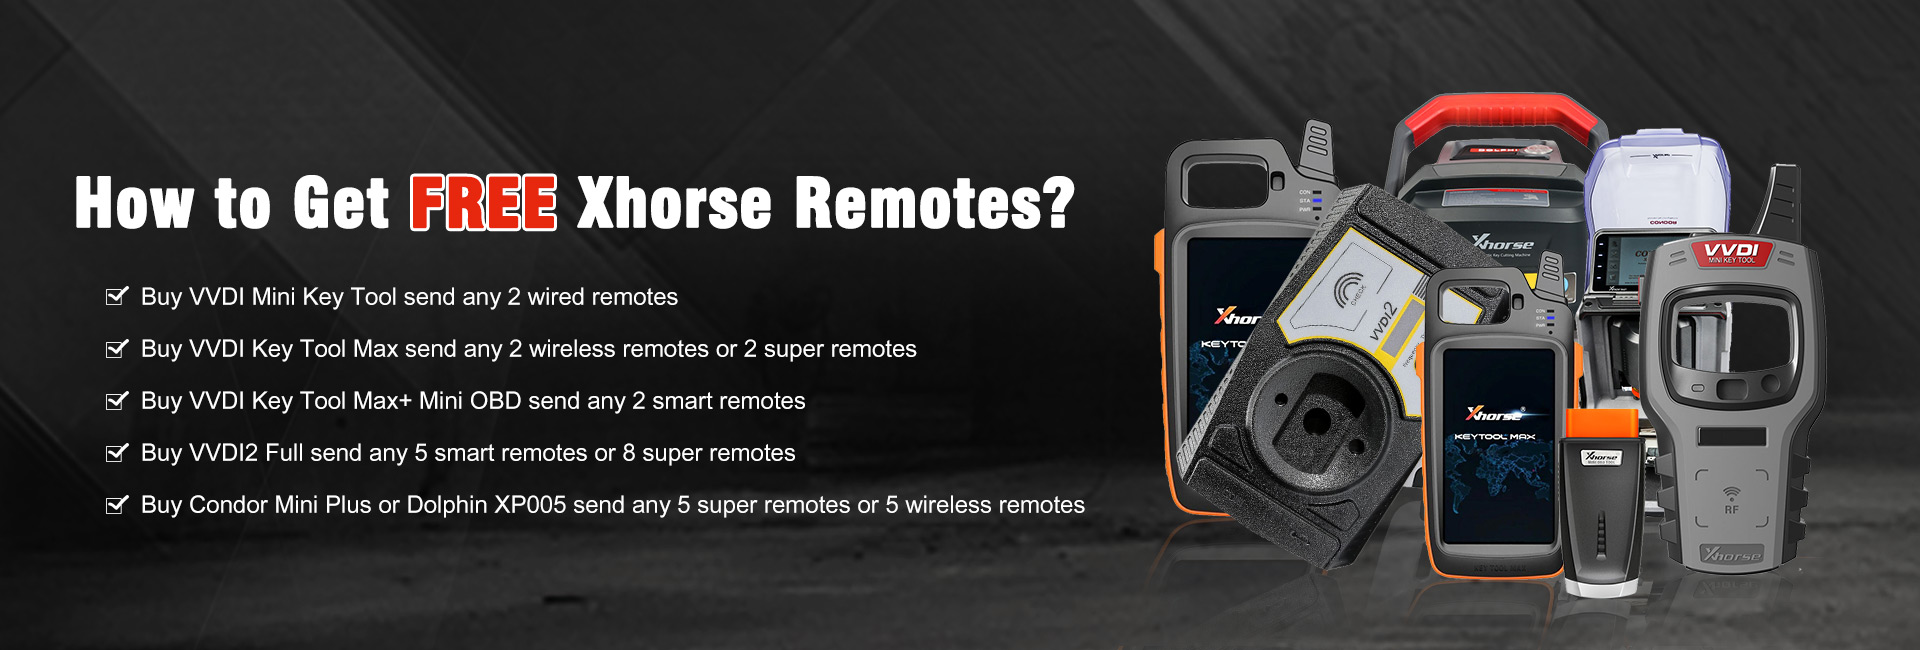 HOW TO GET FREE XHORSE REMOTES